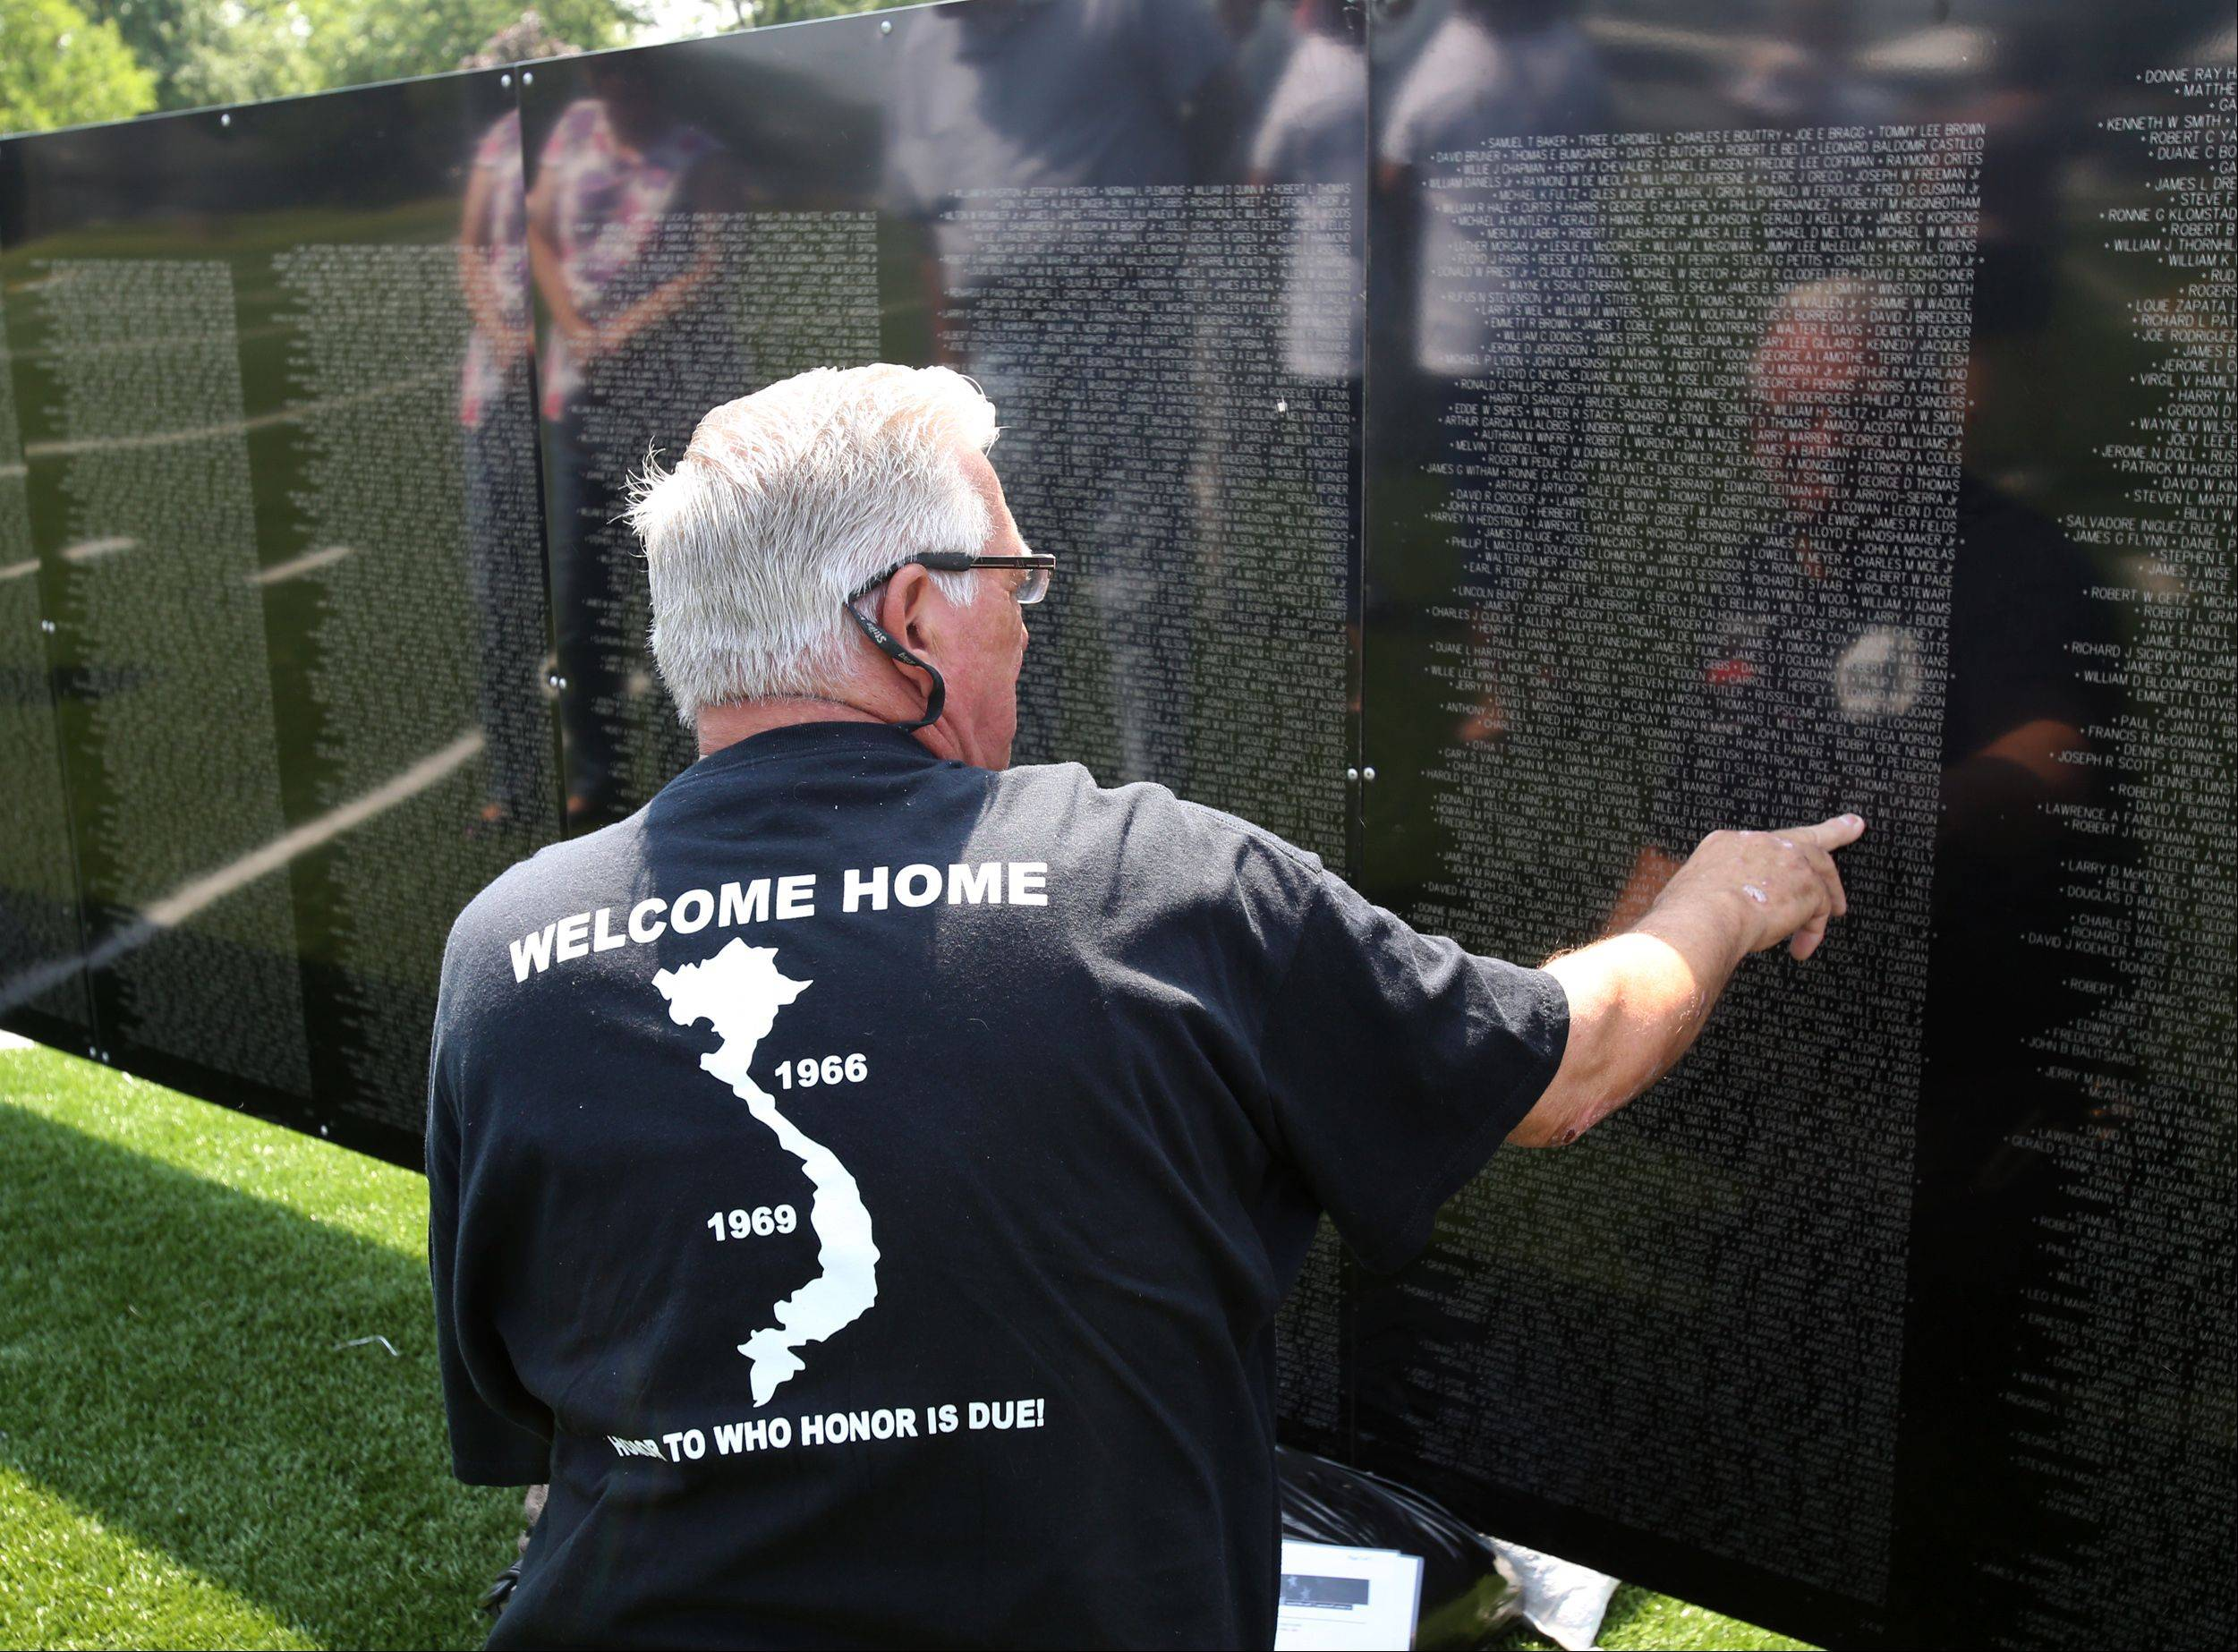 Helmut Stankevicius of Elmhurst is a former veteran of the U.S. Army's 9th Division who honored the fallen Thursday during the opening ceremonies for The Wall That Heals, a traveling replica of the Vietnam Veterans Memorial displayed in Bensenville's Redmond Park.